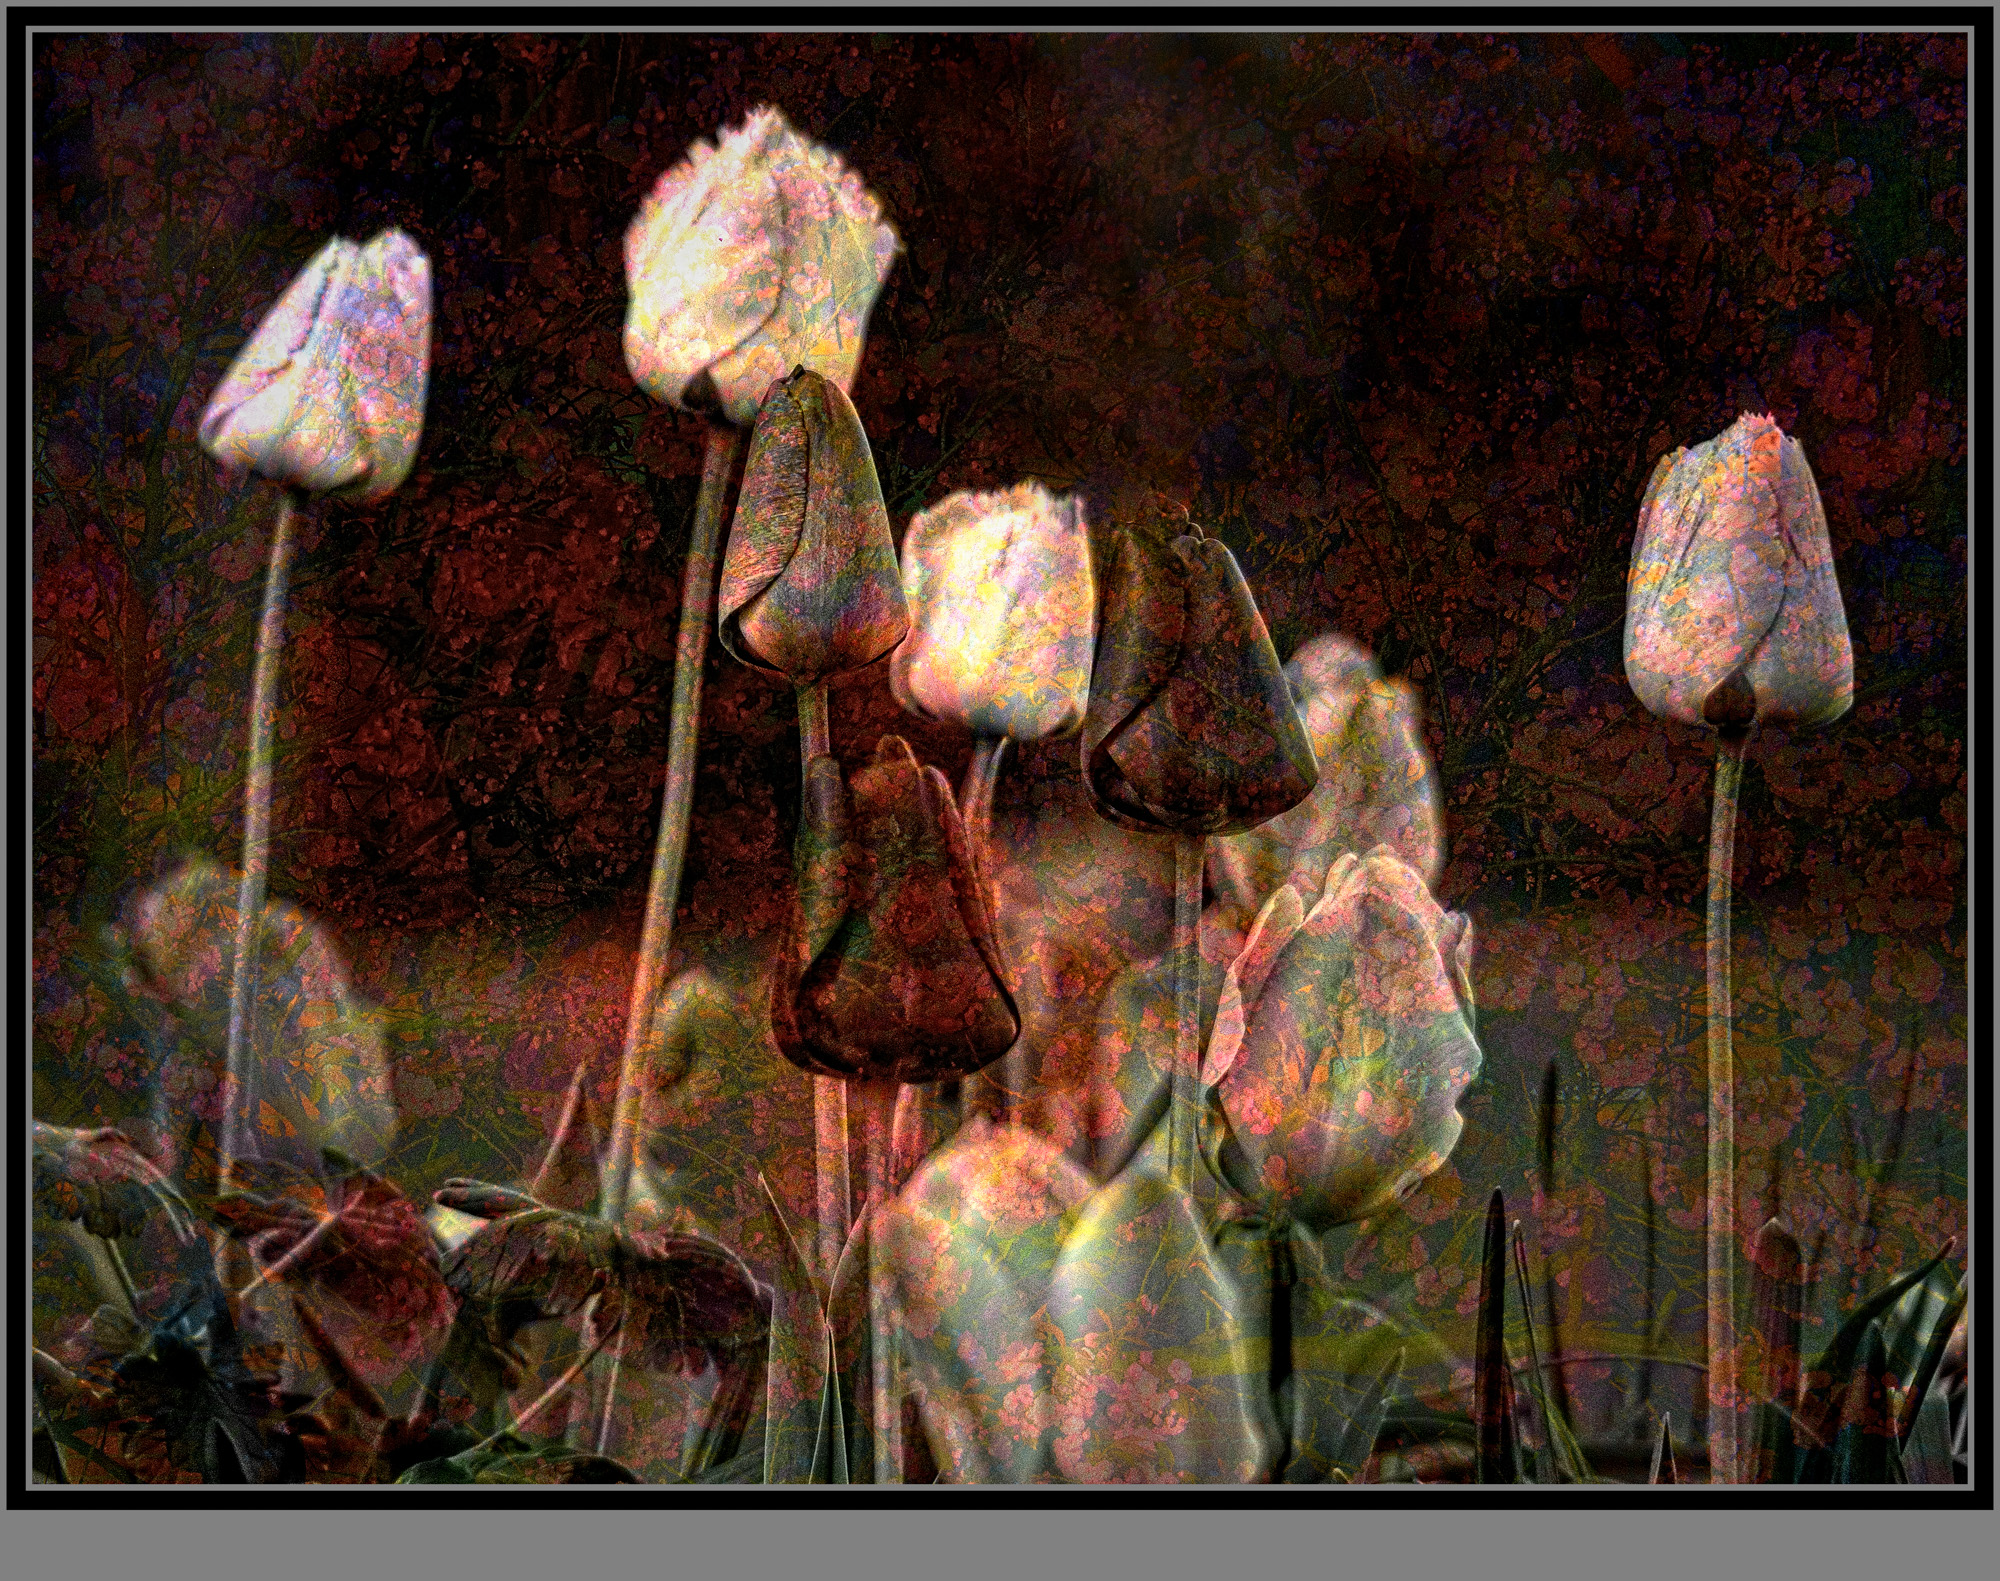 Mad about tulips ©Stewart Wall 2020